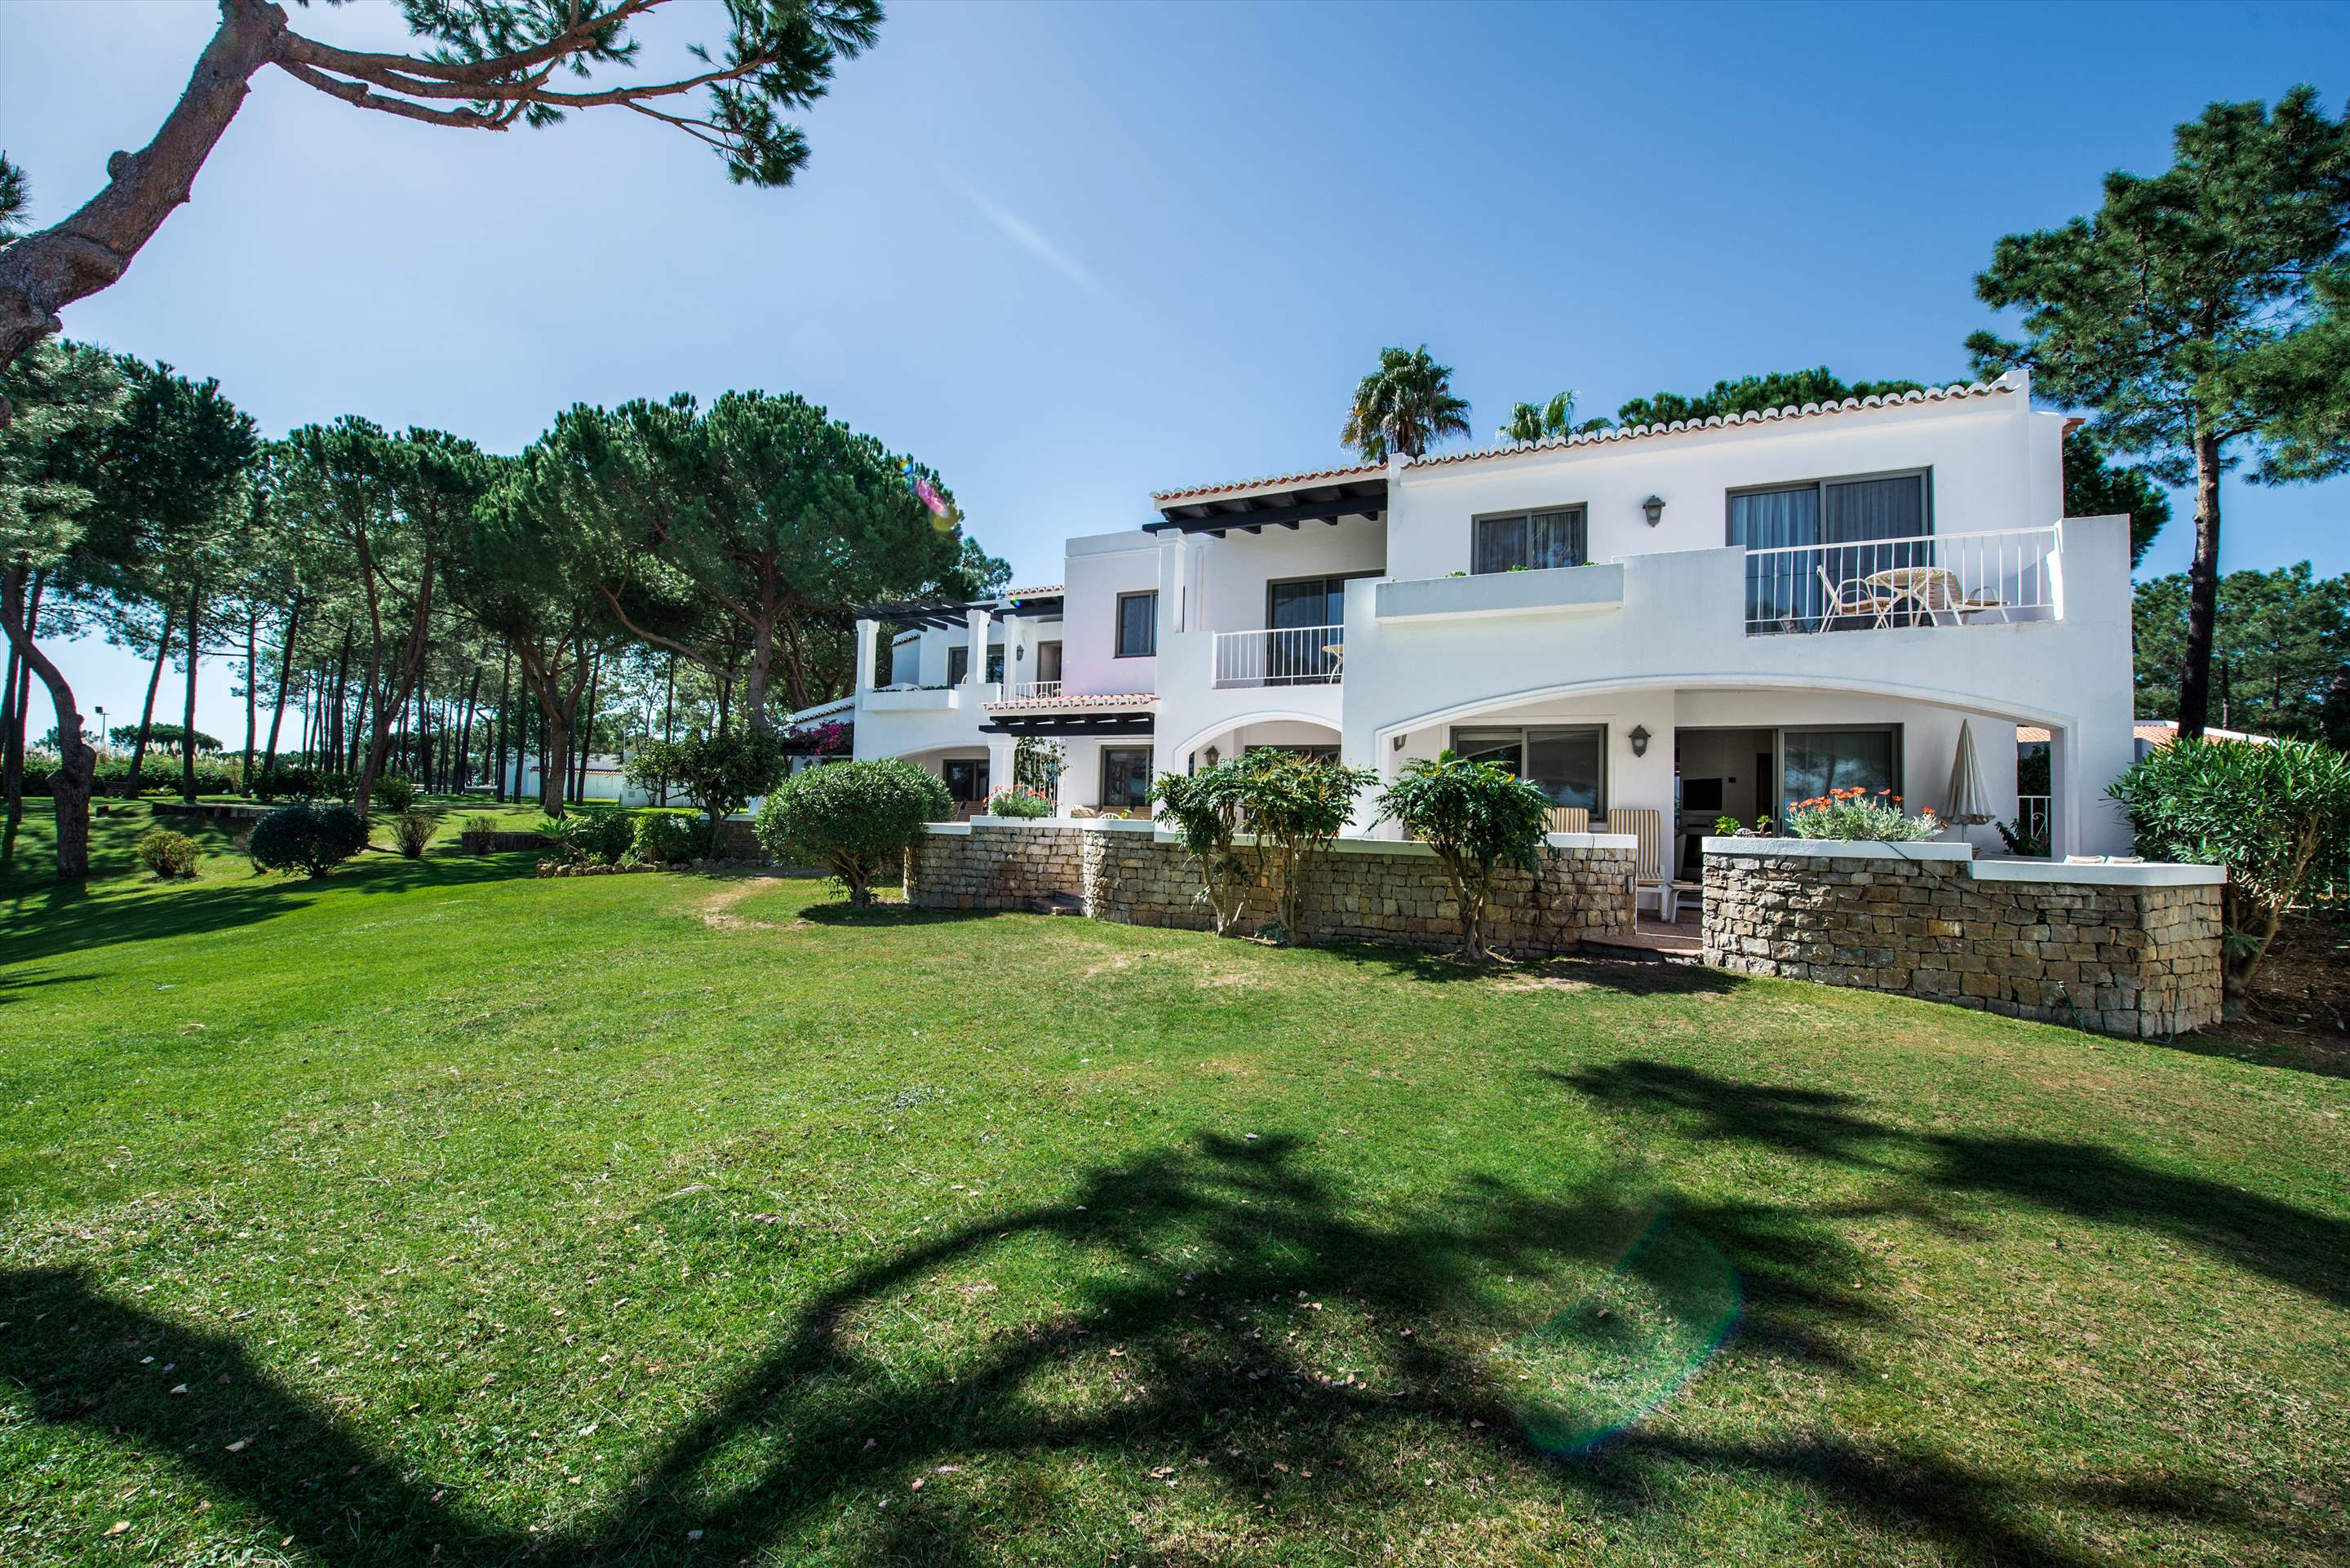 Four Seasons Country Club 1 bed, Superior - Thursday Arrival, 1 bedroom apartment in Four Seasons Country Club, Algarve Photo #1